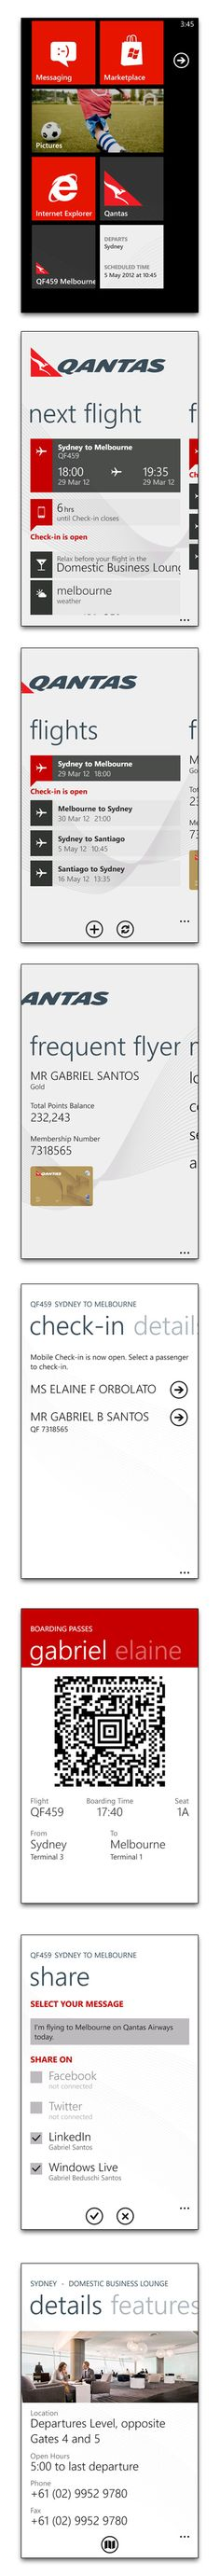 """Qantas app for Windows Phone *** """" Travel with the Qantas app on your next journey. You'll get push notifications about check-in times, flight status updates and directions to the airport sent straight to your phone. You can also check-in, locate lounges and pin your upcoming flights to the start screen. """""""